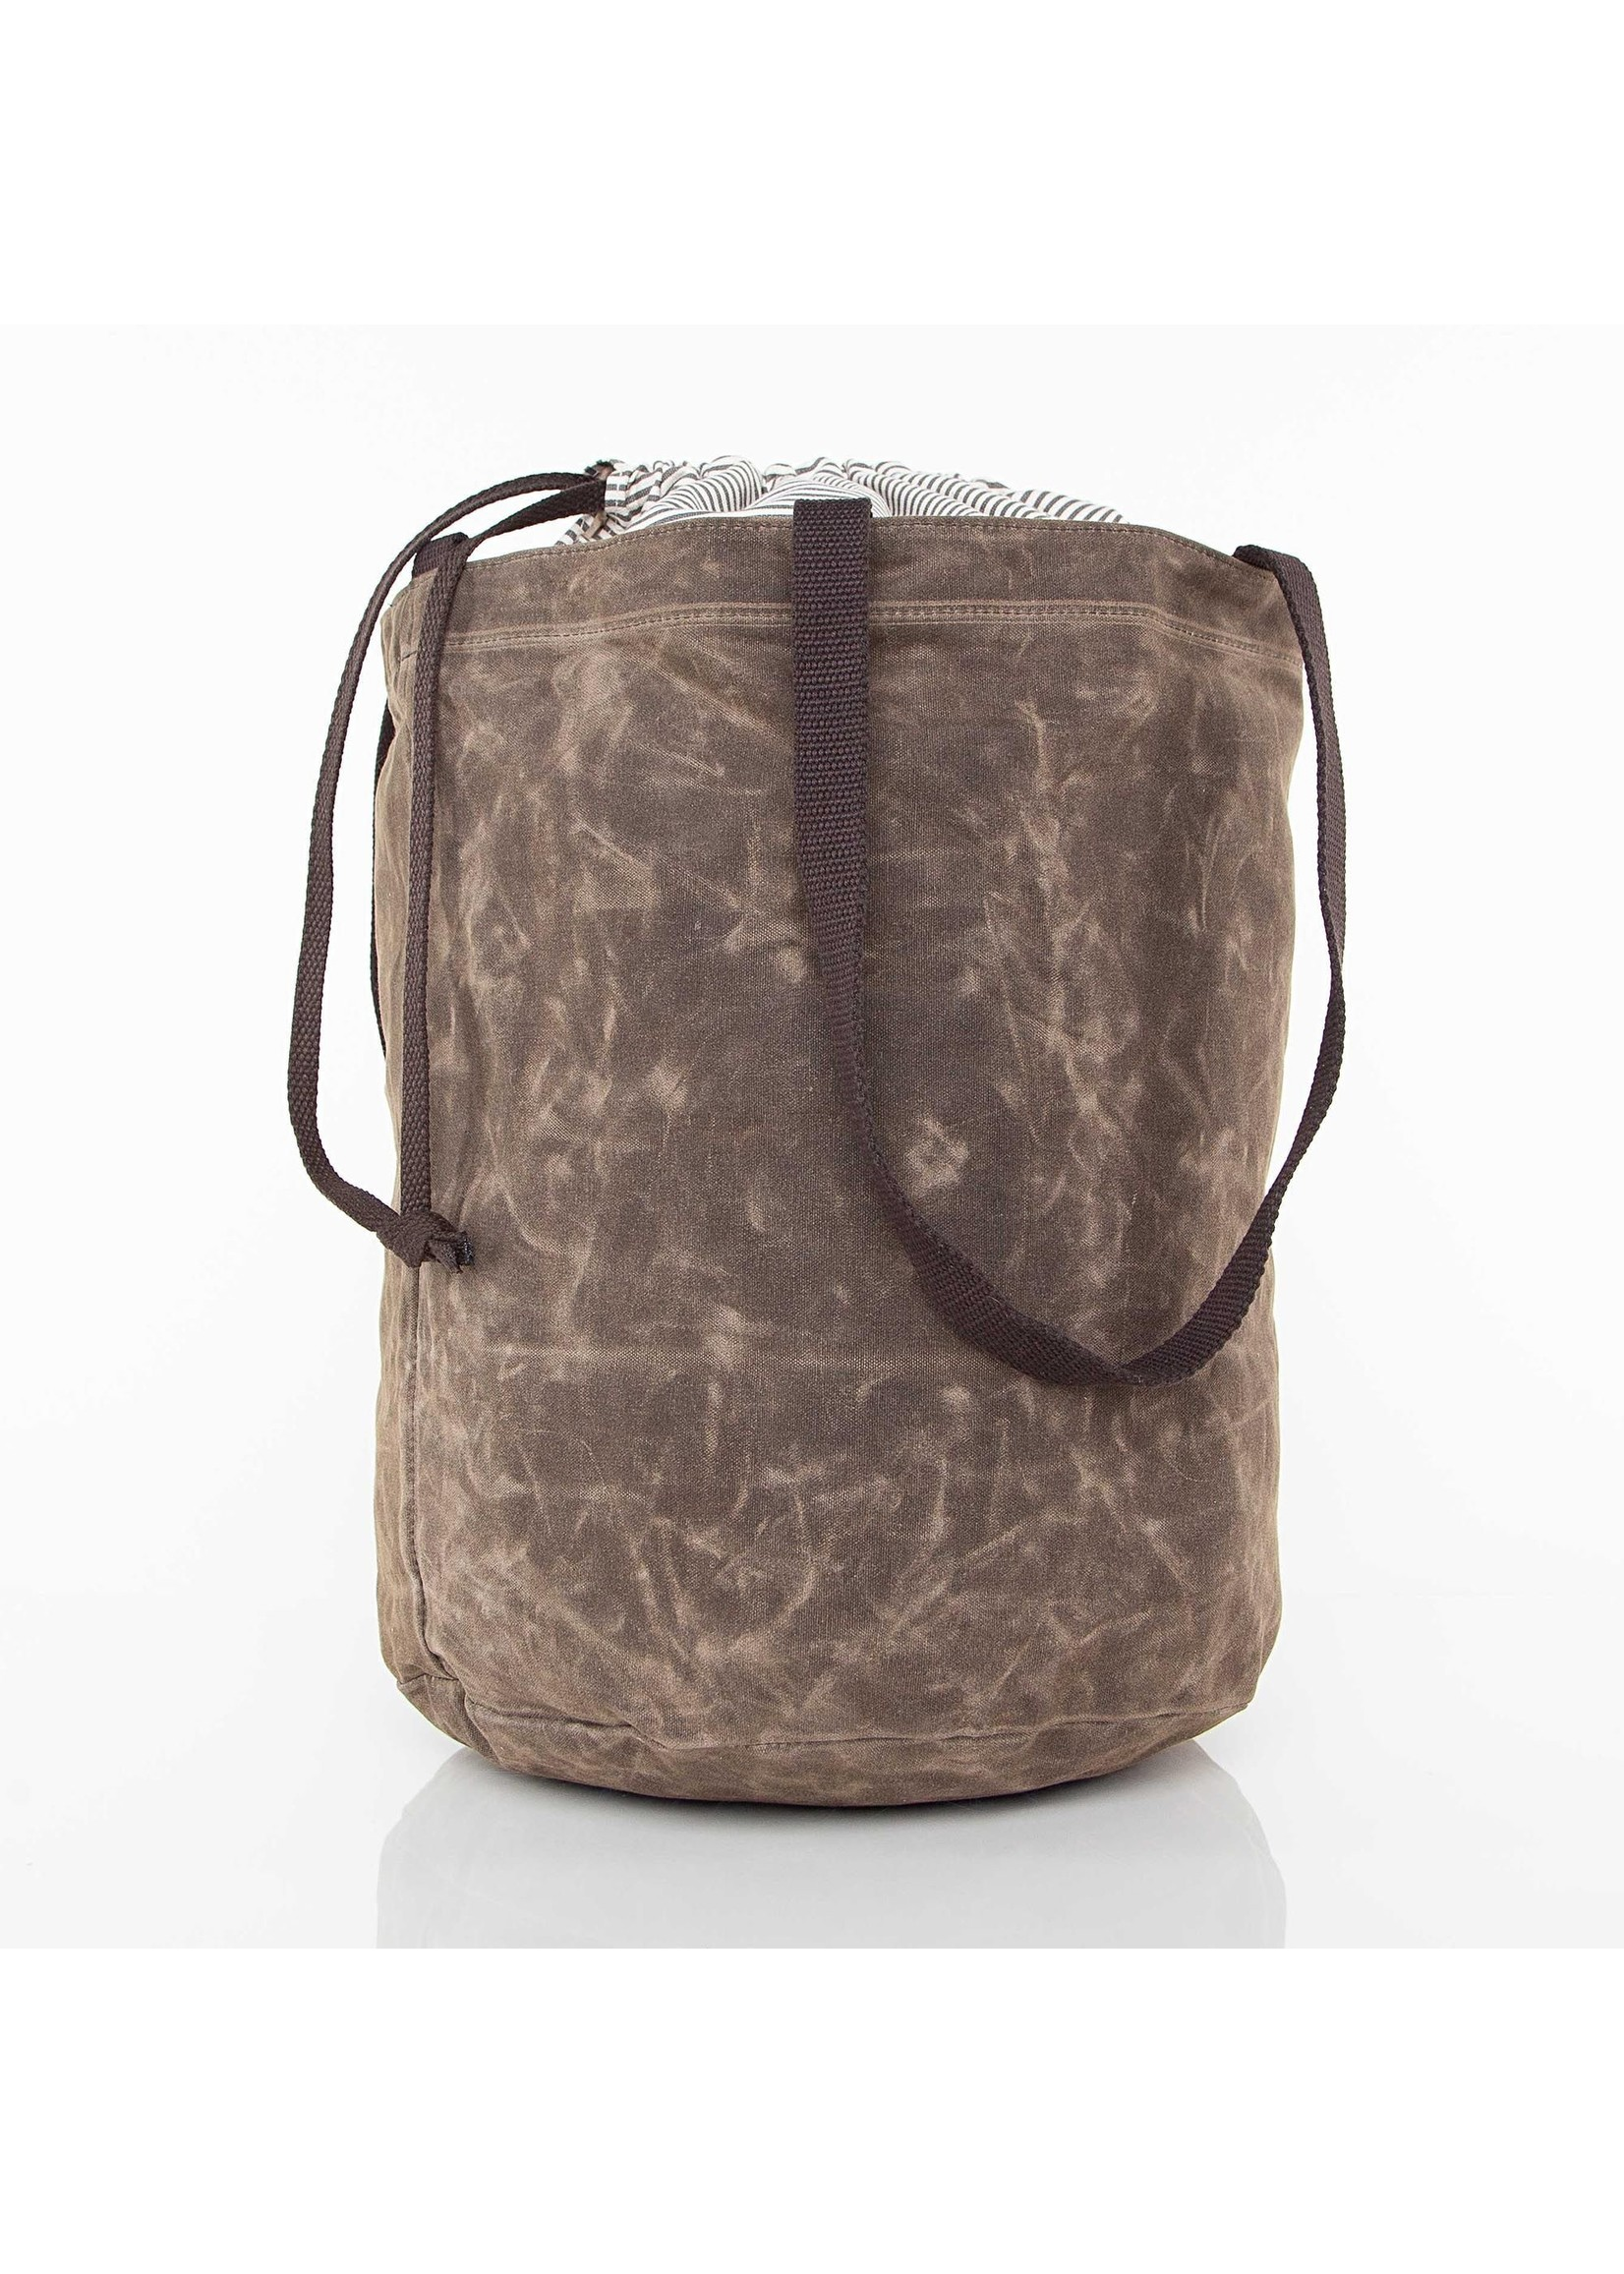 CB Station Waxed Laundry Tote - Olive